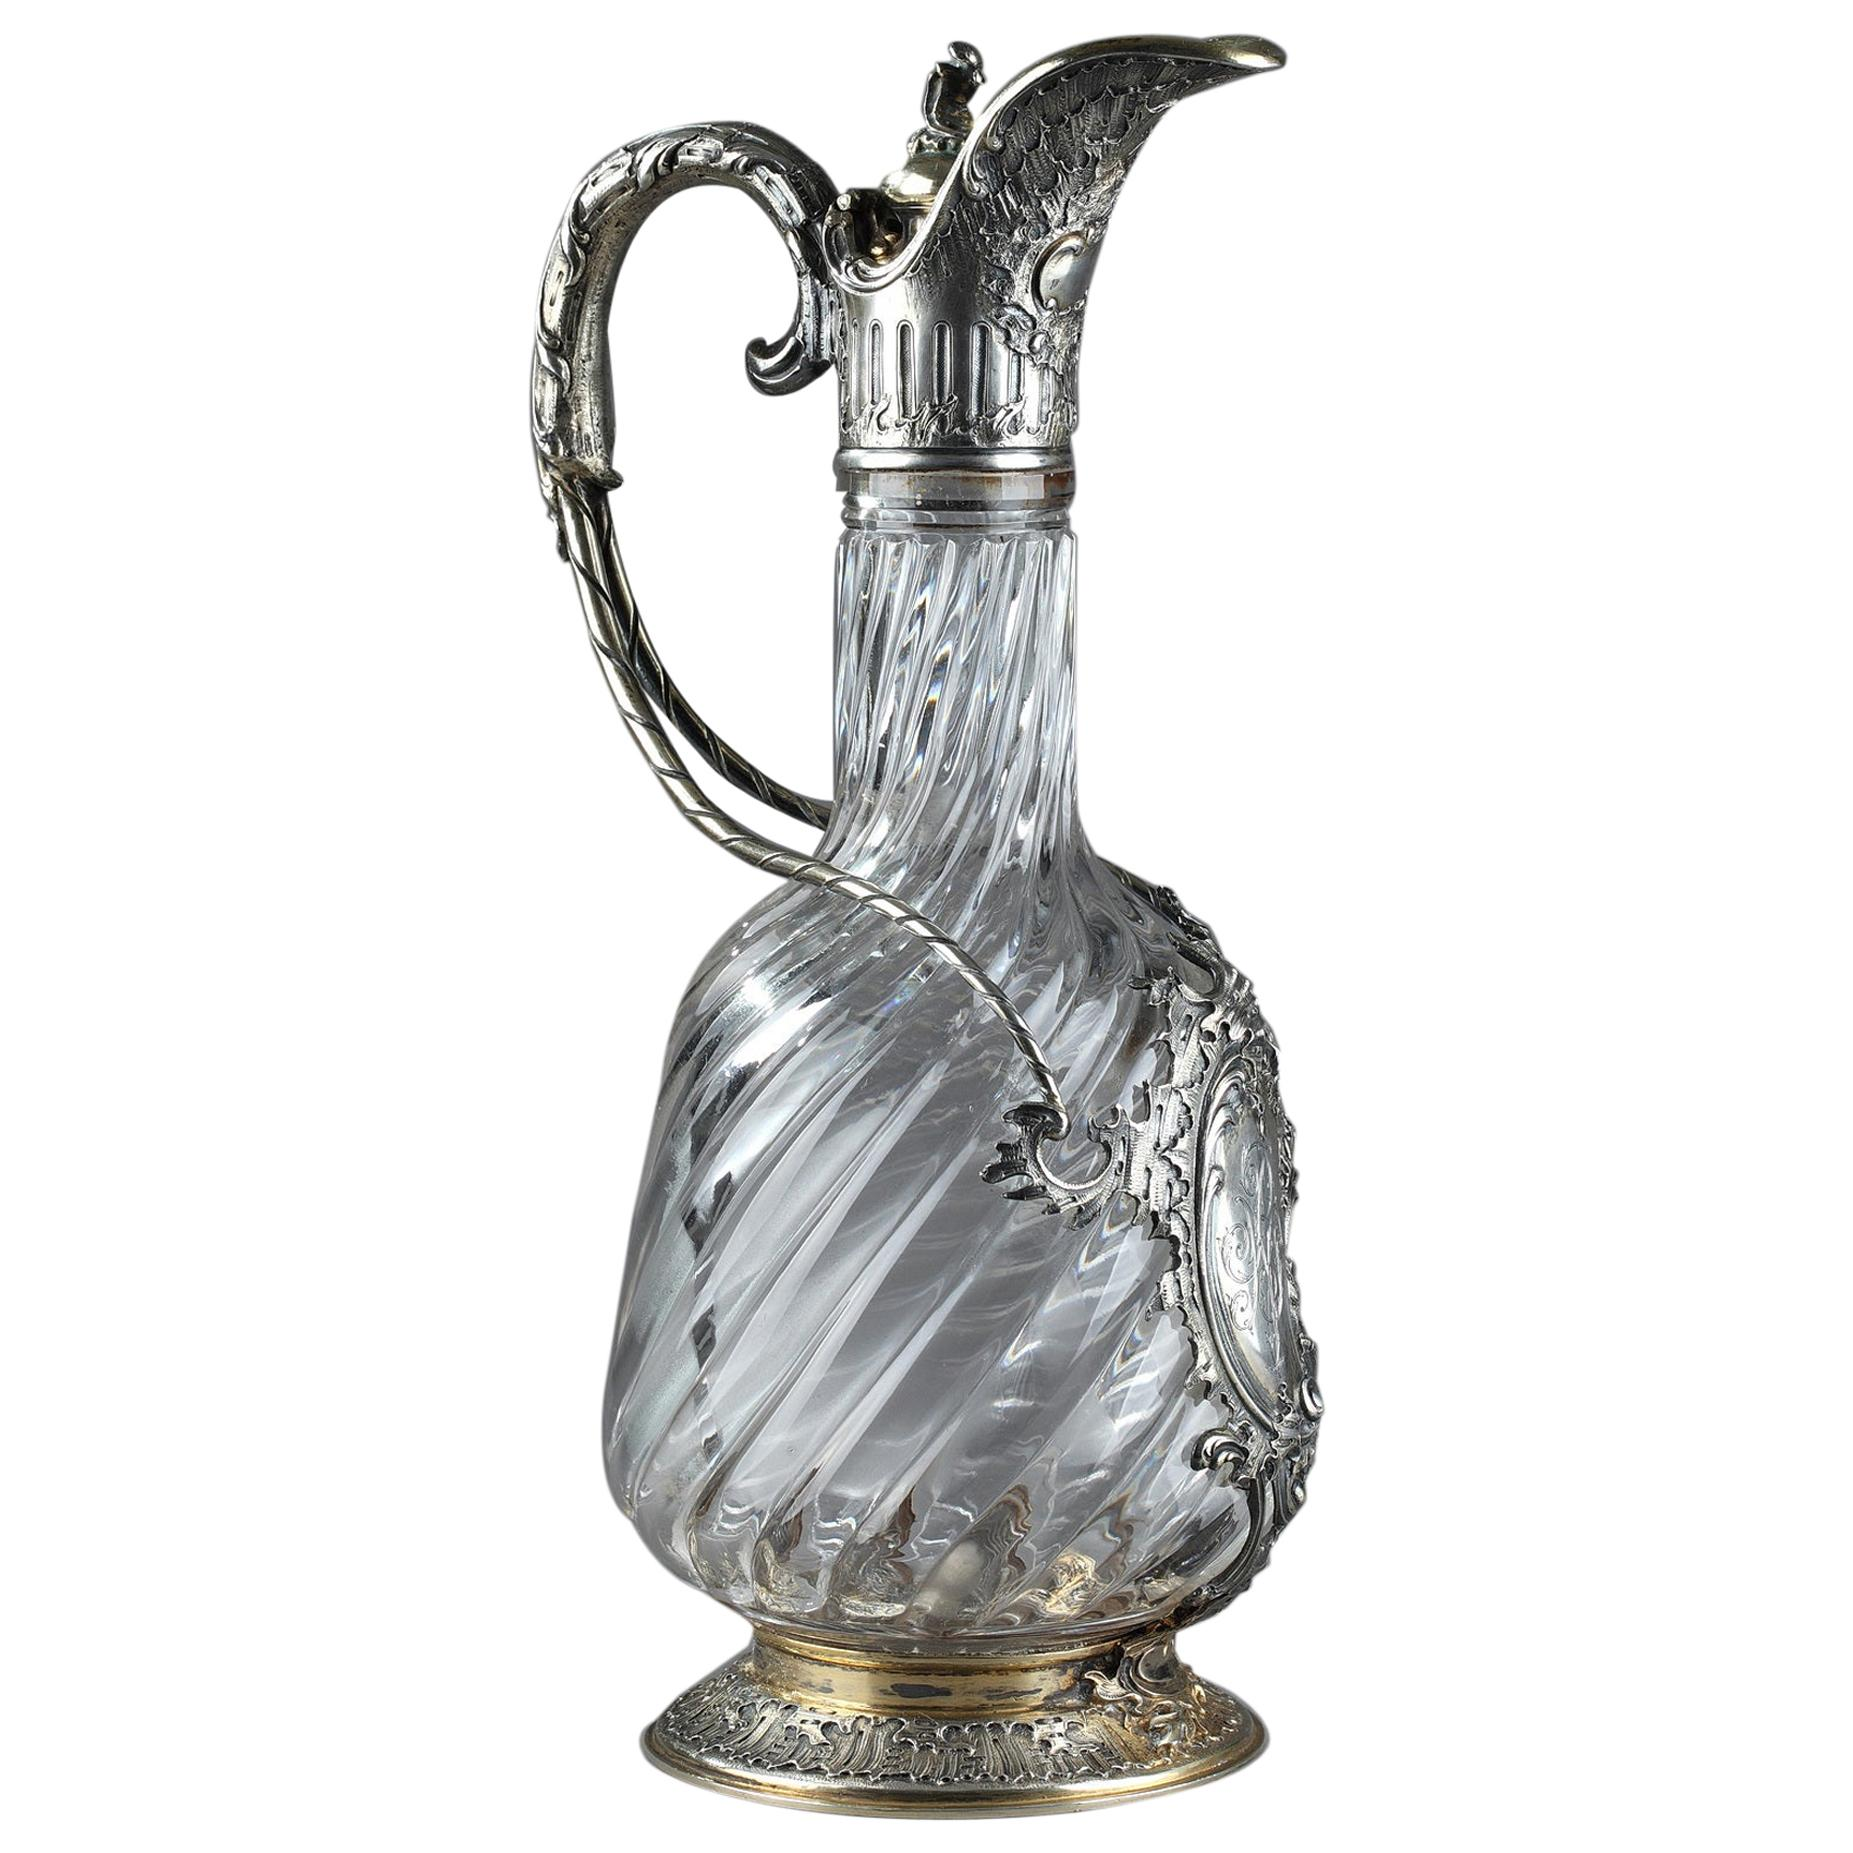 Ewer in Silver and Crystal, Late 19th Century